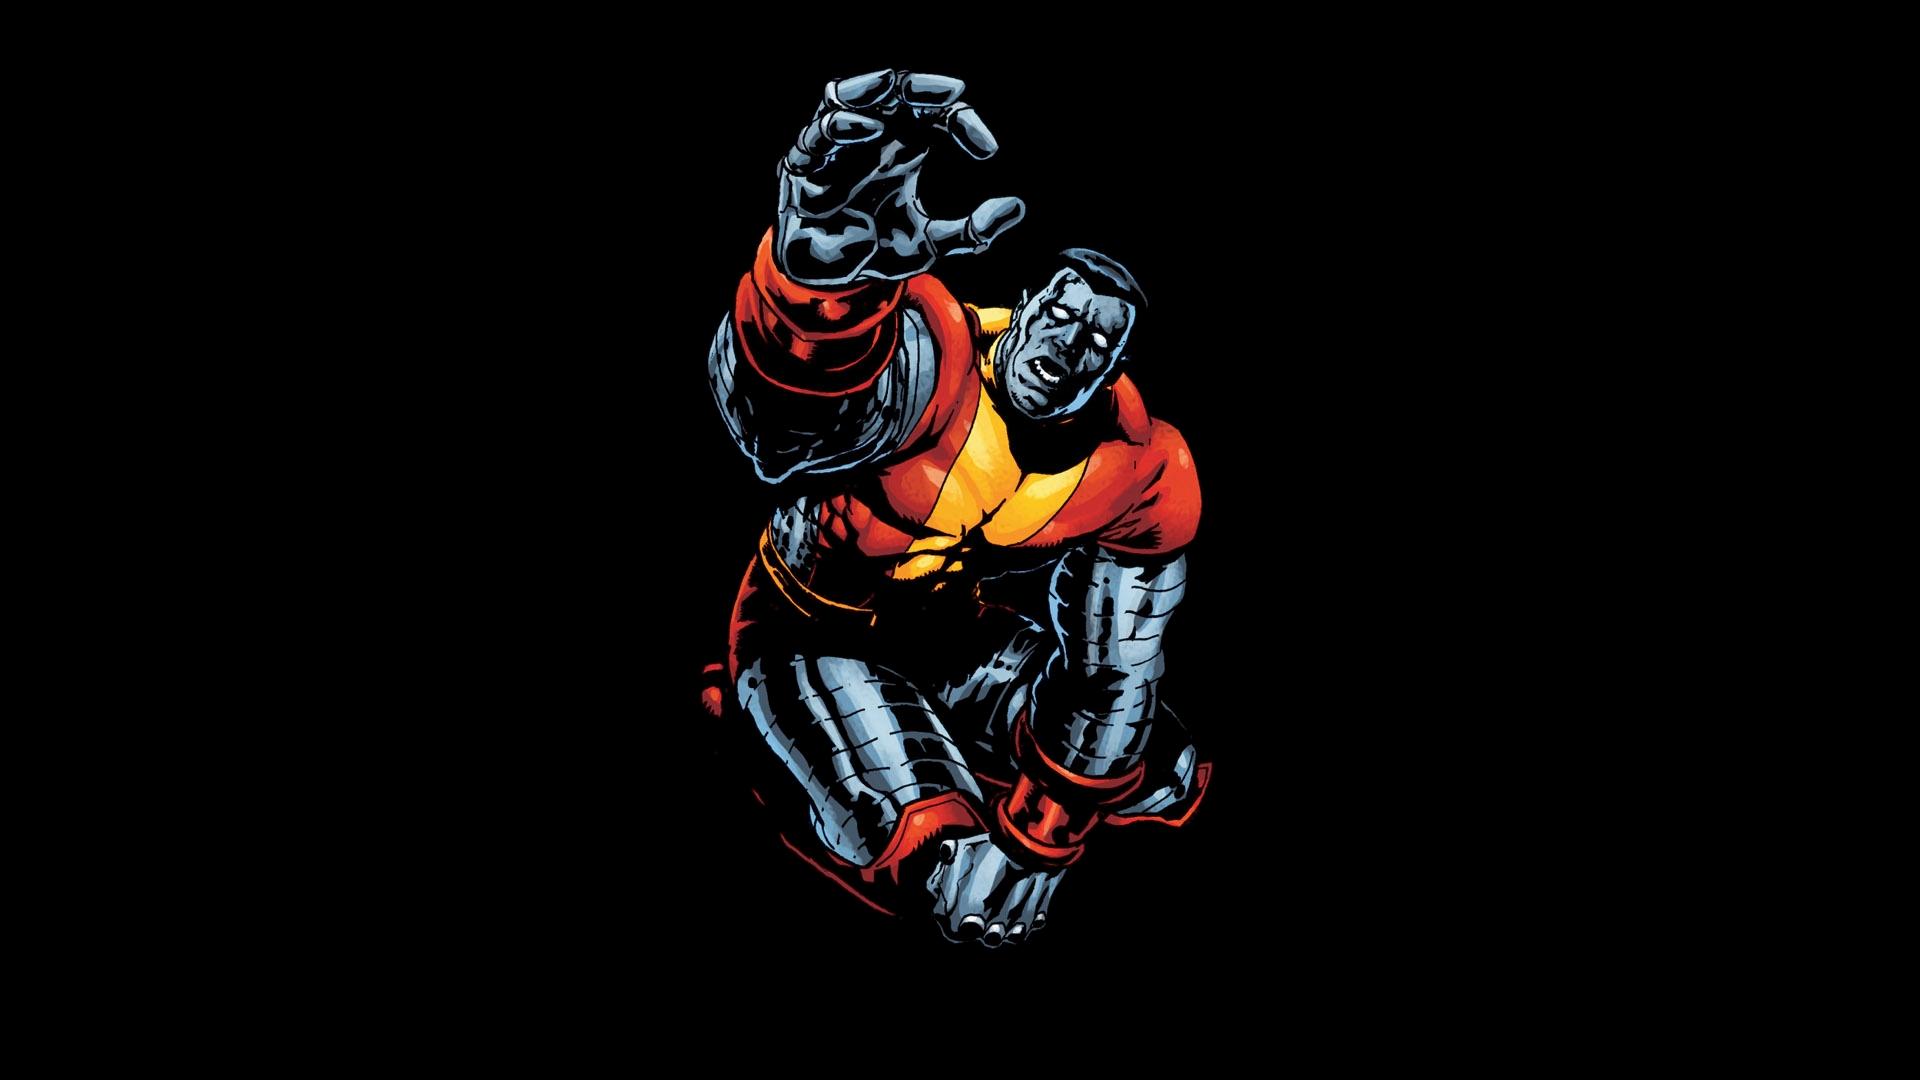 colossus iphone wallpaper